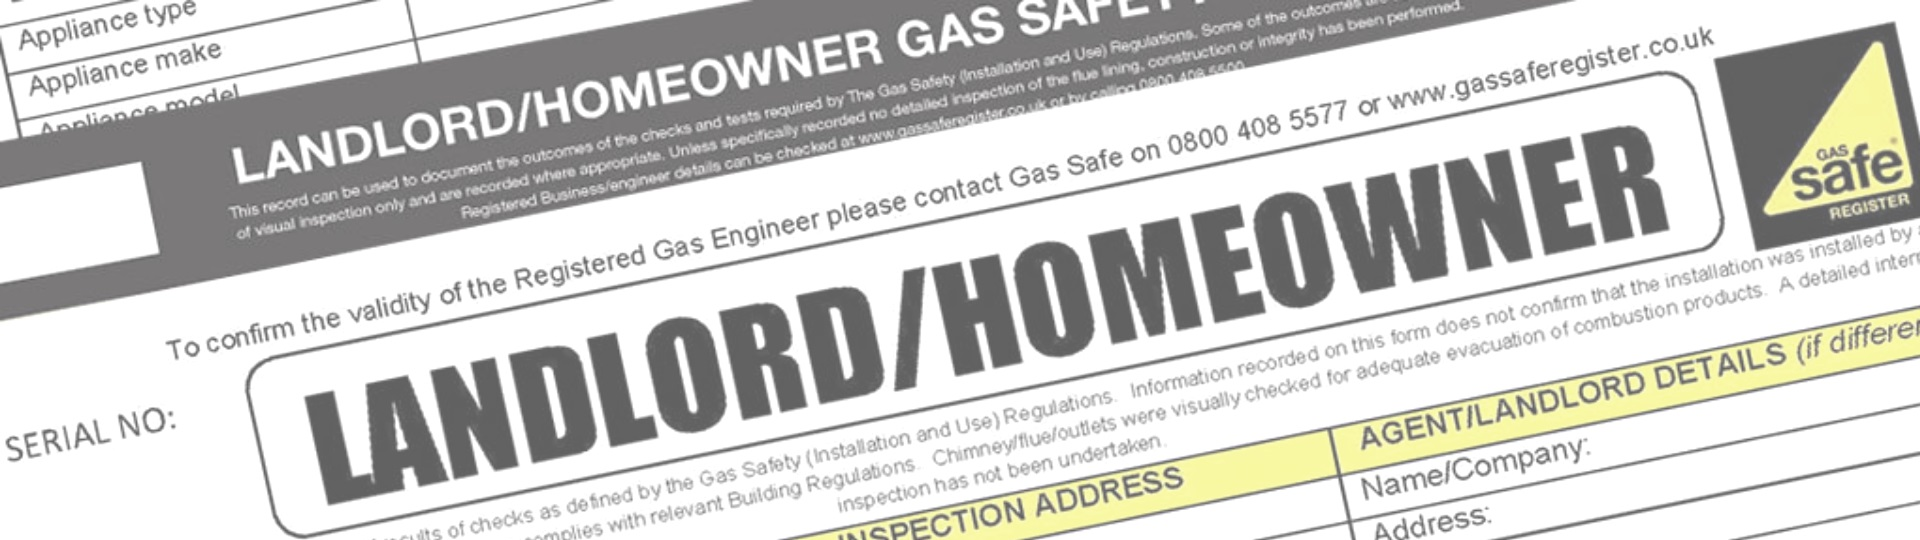 Gas Saftey Certificates Ashley Down